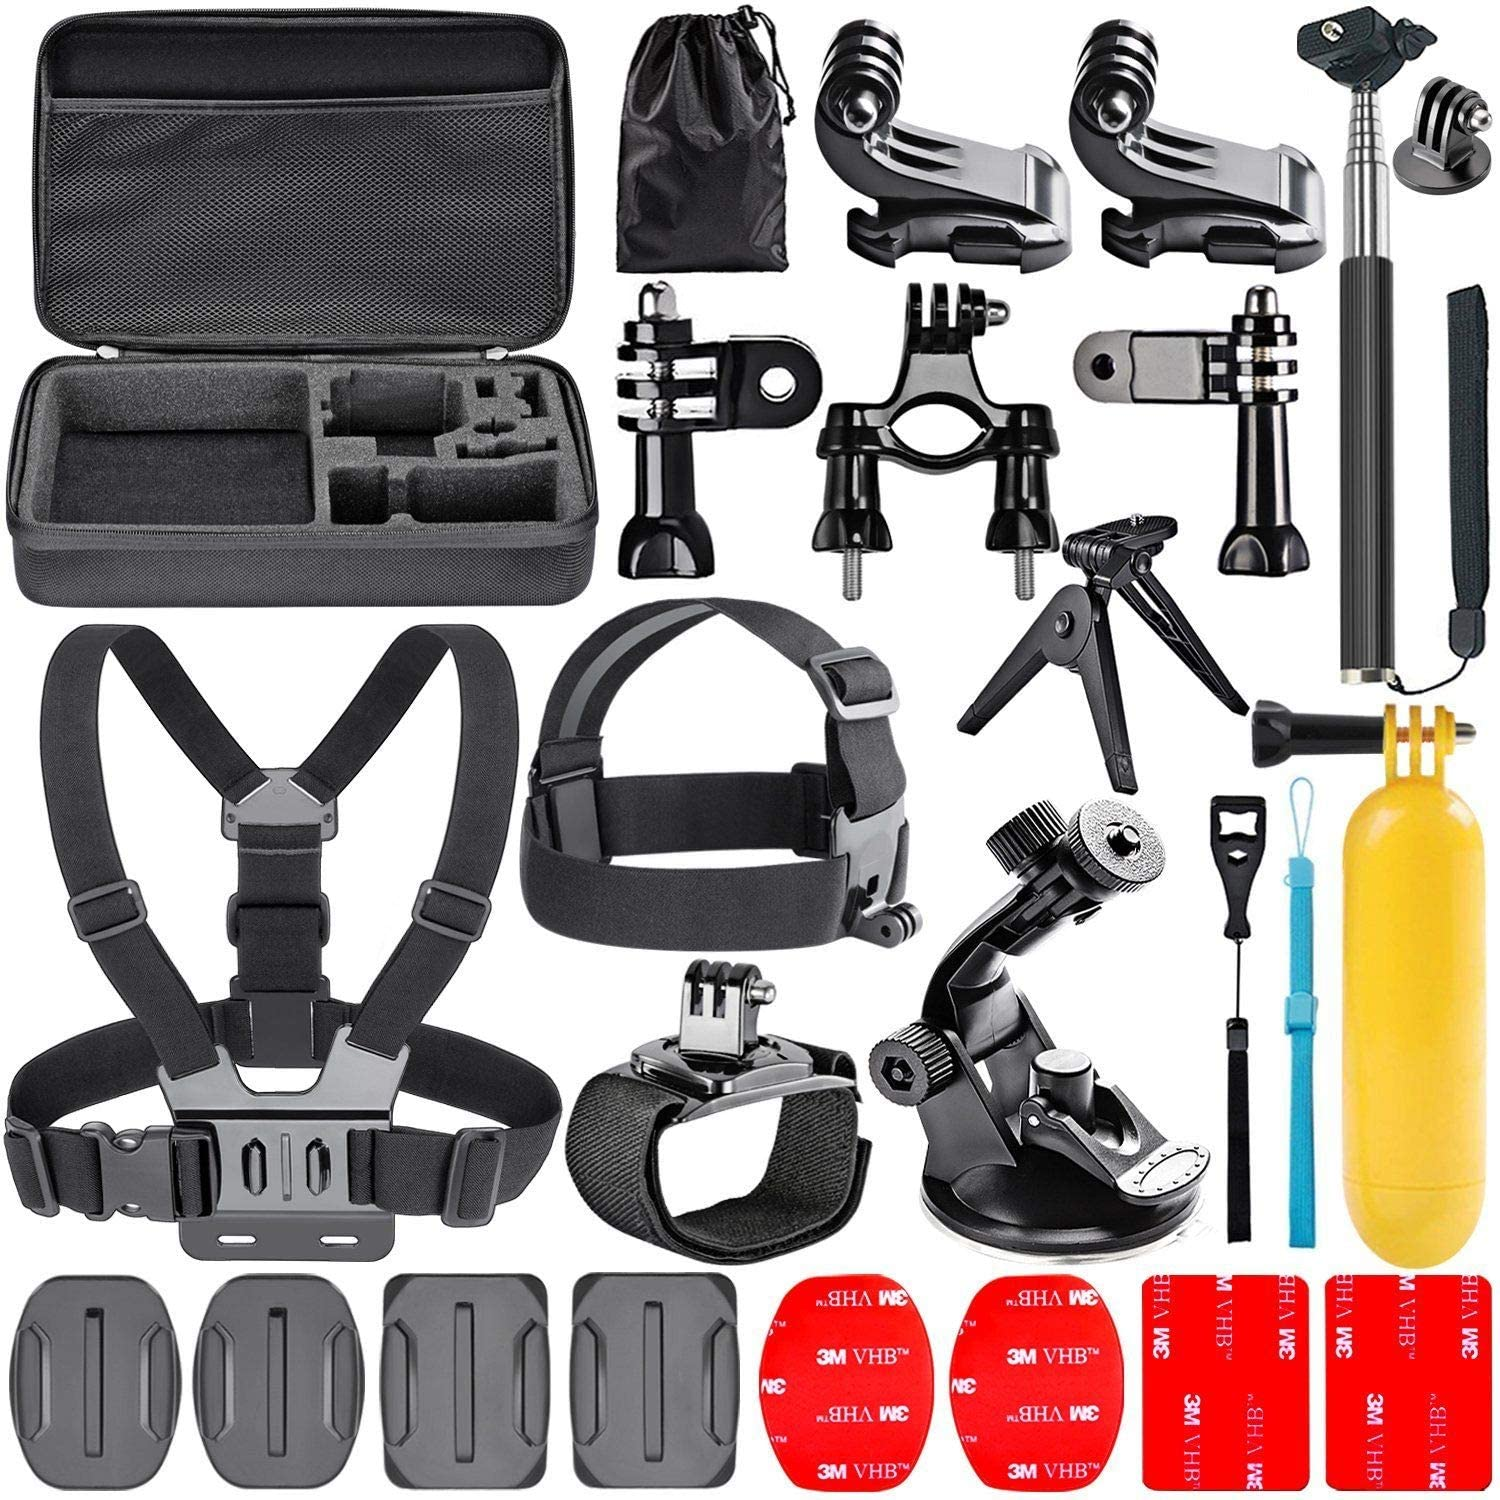 Compatible with The Apeman A79 Action Camera Navitech 60-in-1 Action Camera Accessories Combo Kit with EVA Case